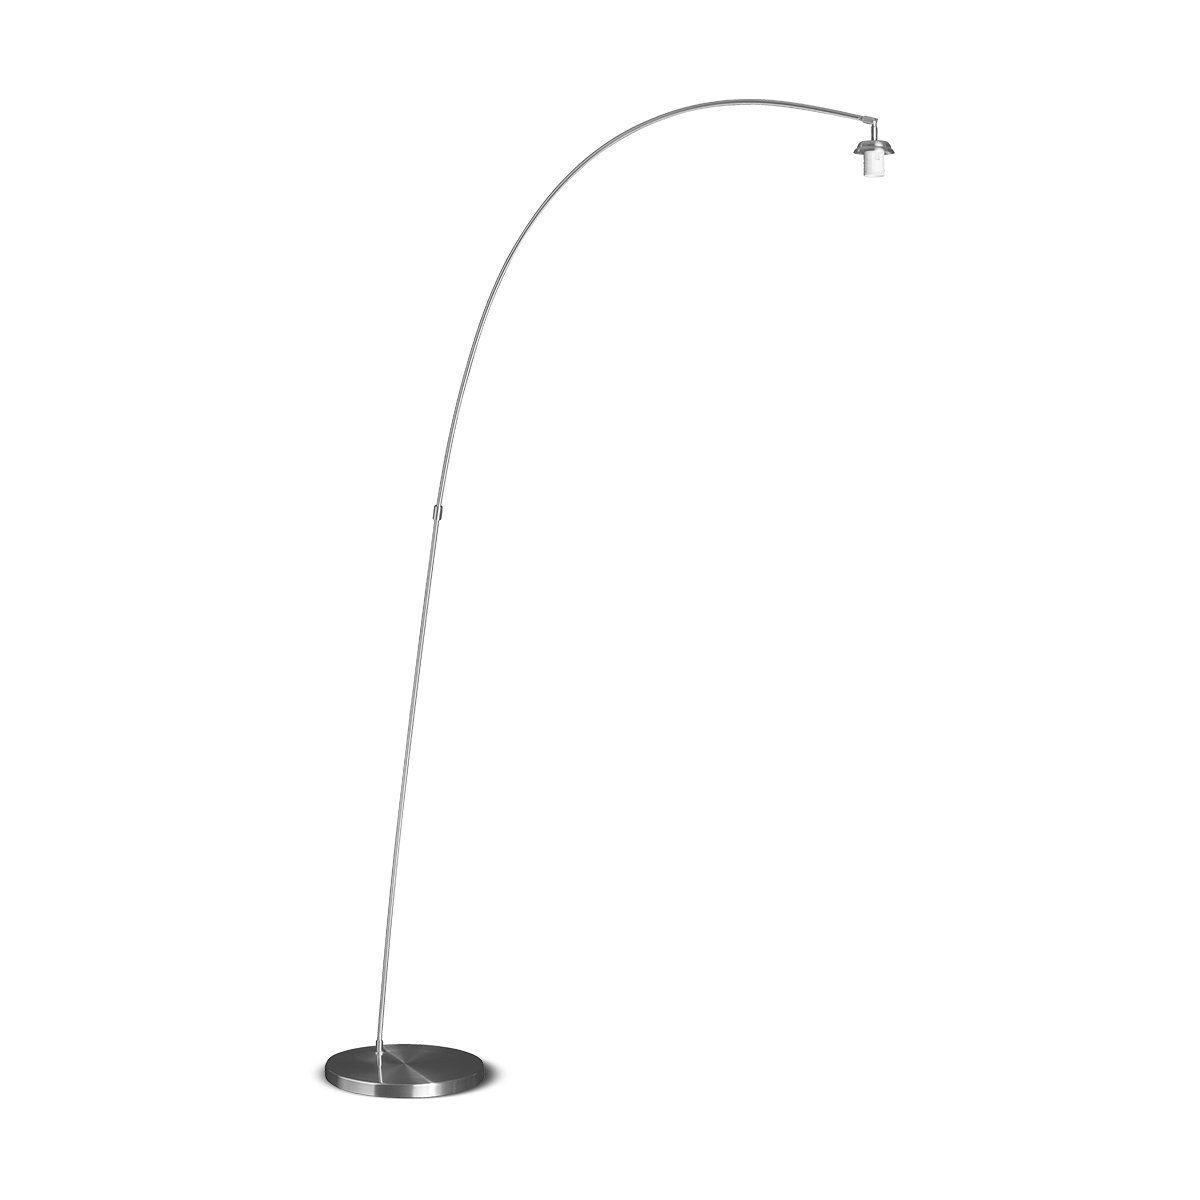 HOME SWEET HOME vloerlamp tong ↕ 190 cm mat staal